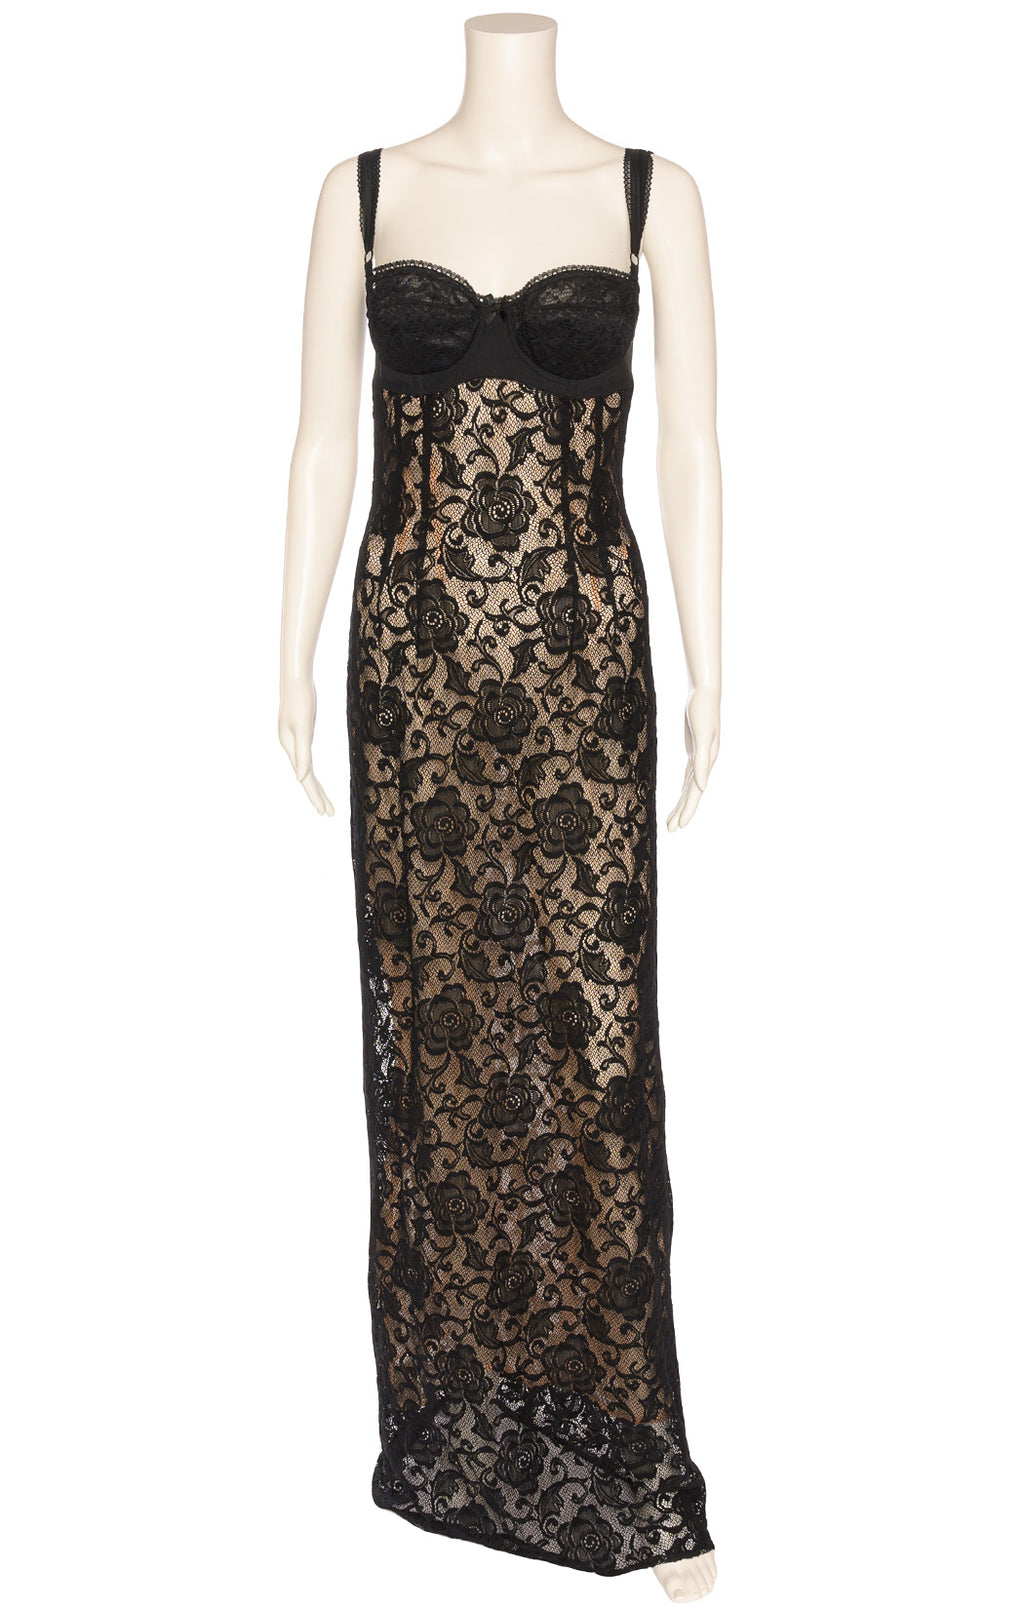 DOLCE & GABBANA  Dress Size: IT 42 (comparable to US 4-6)